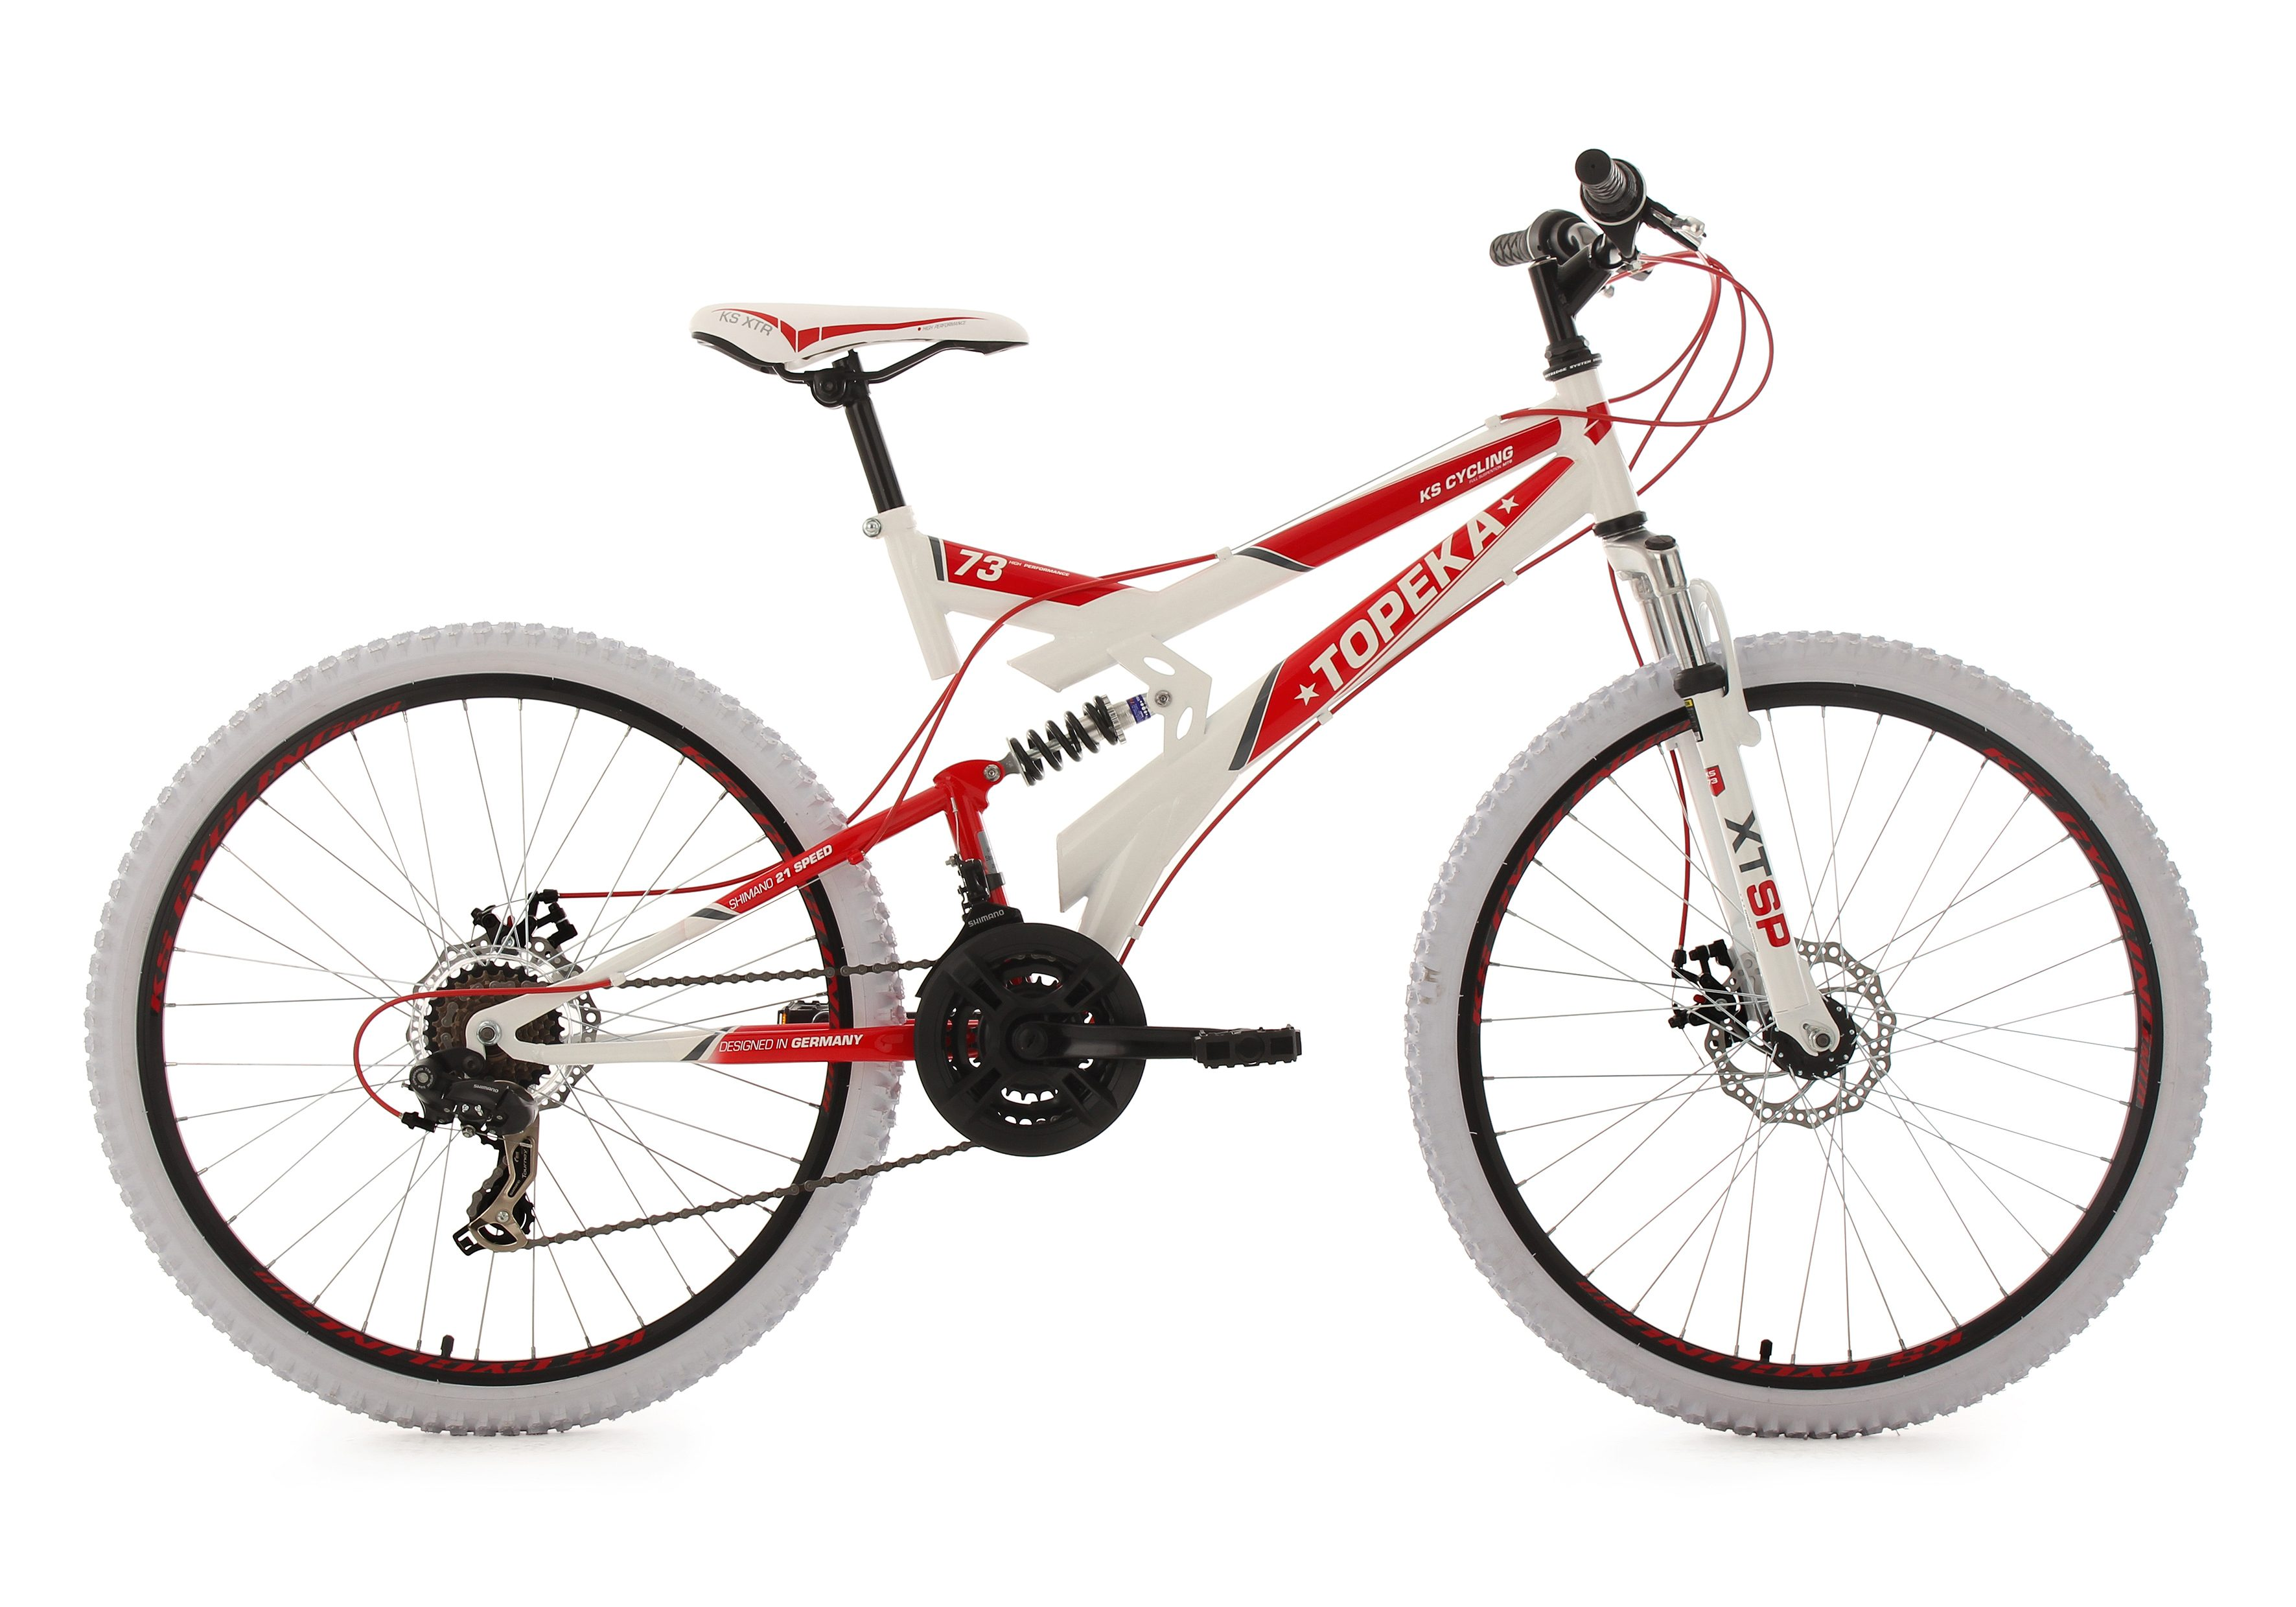 KS Cycling Fully-Mountainbike, 26 Zoll, 21 Gang-ShimanoTourney Kettenschaltung, »Topeka«